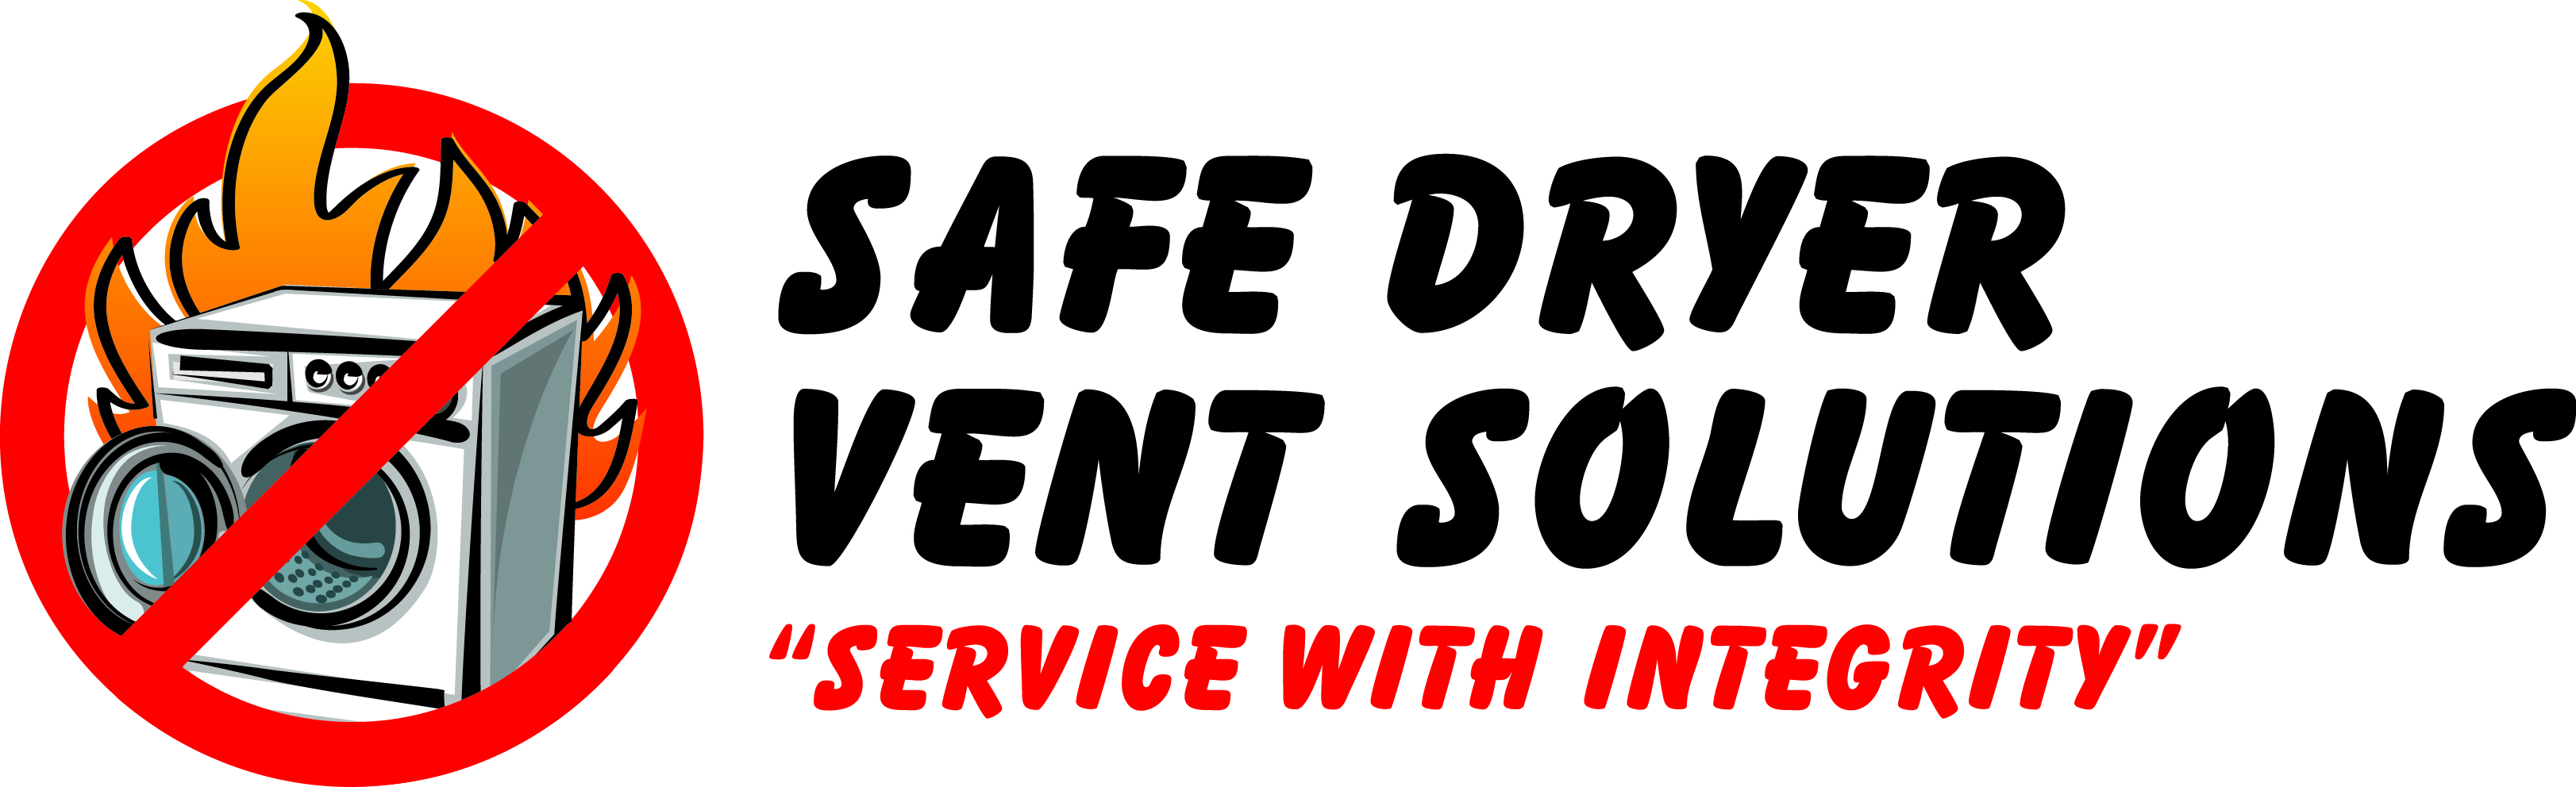 Safe Dryer Vent Solutions, LLC reviews | Fire Protection Services at 2140 Buttonbush Drive - Plainfield IN